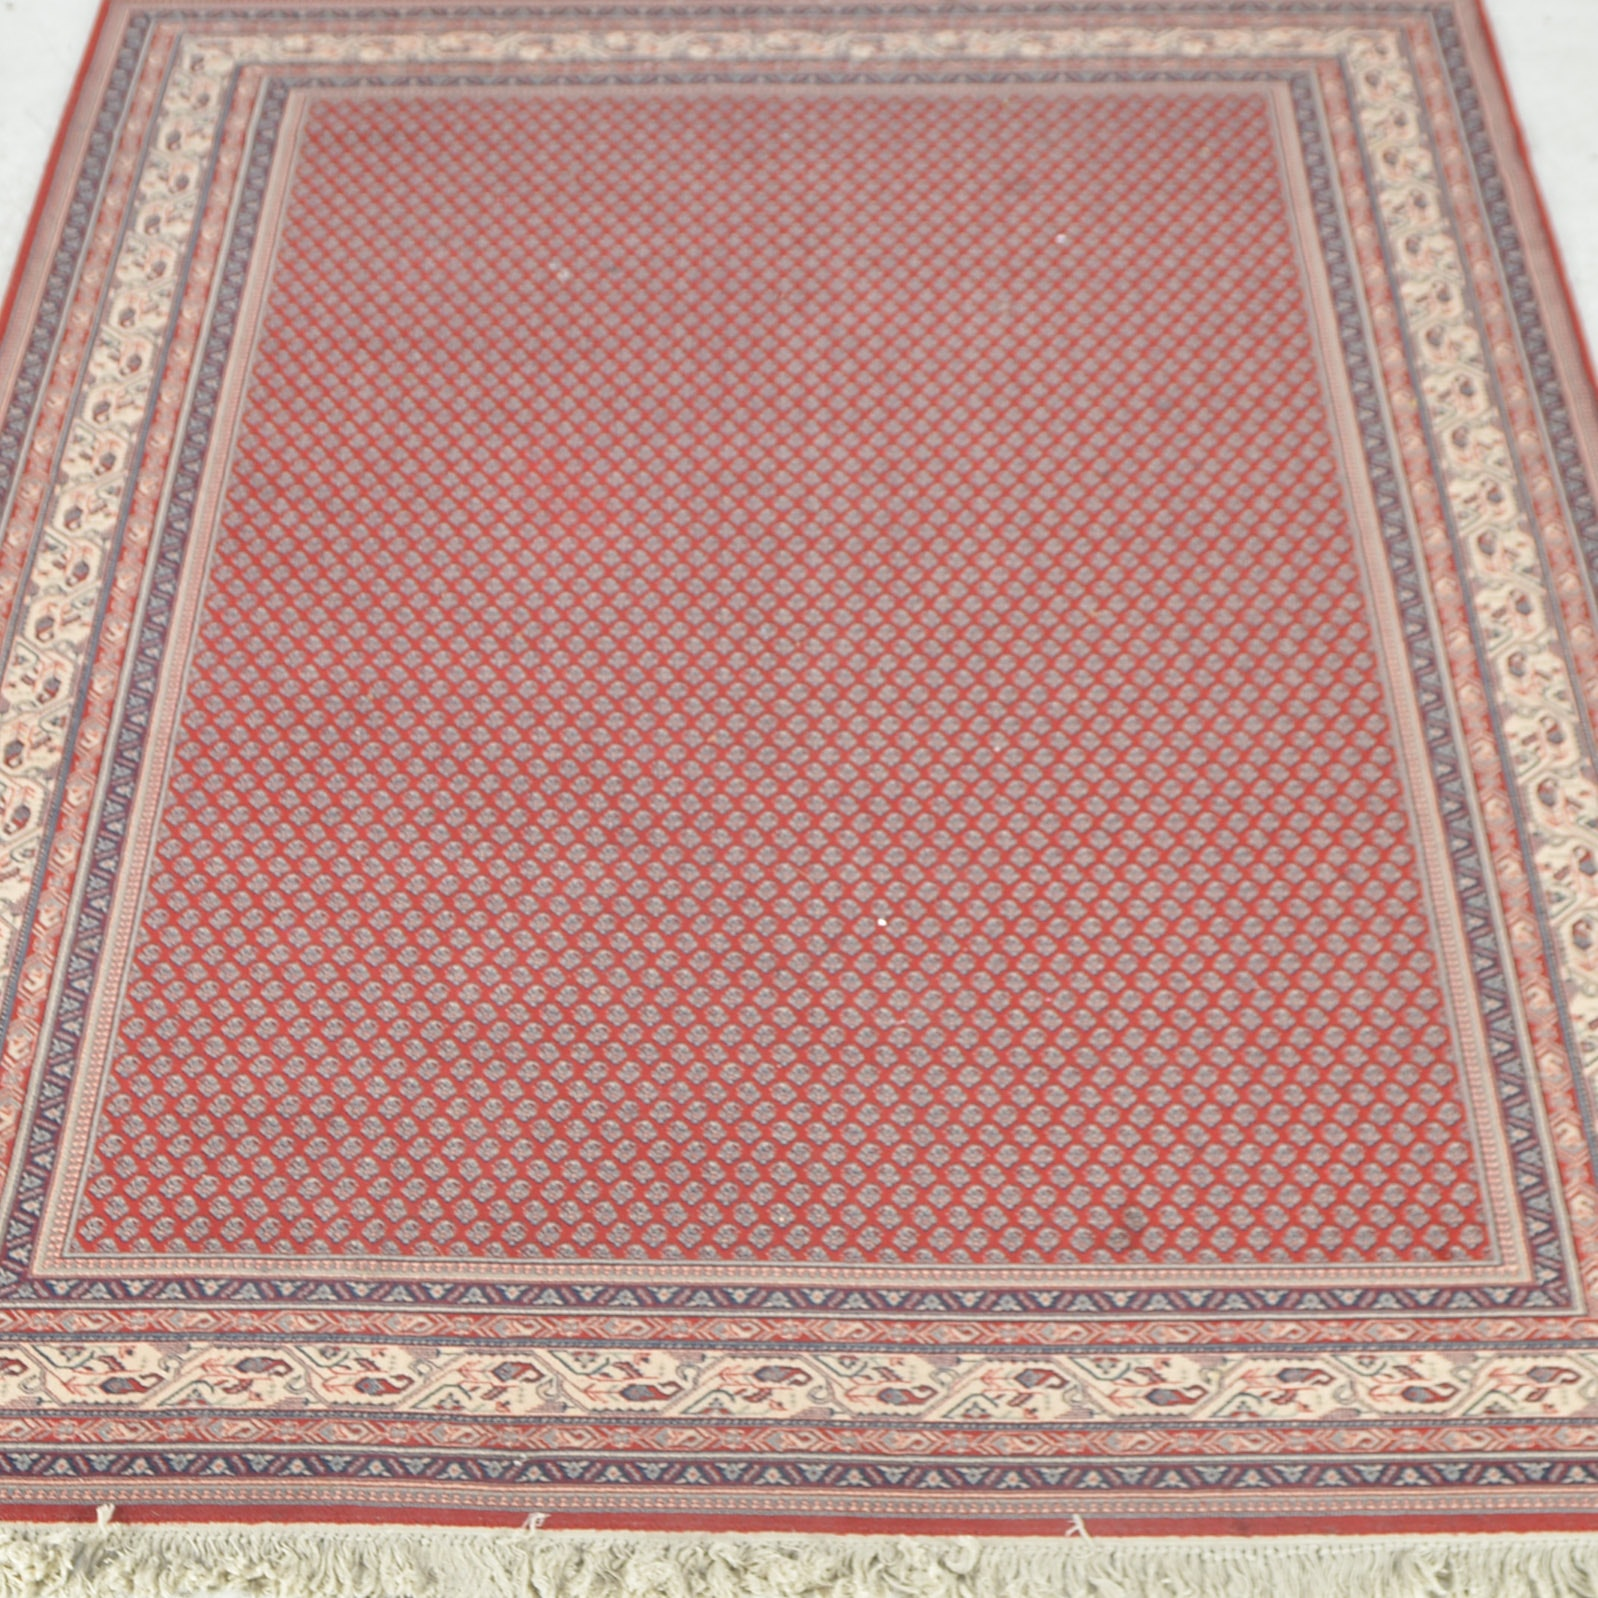 Machine woven Mir-A-Boteh Serabend-Style Area Rug